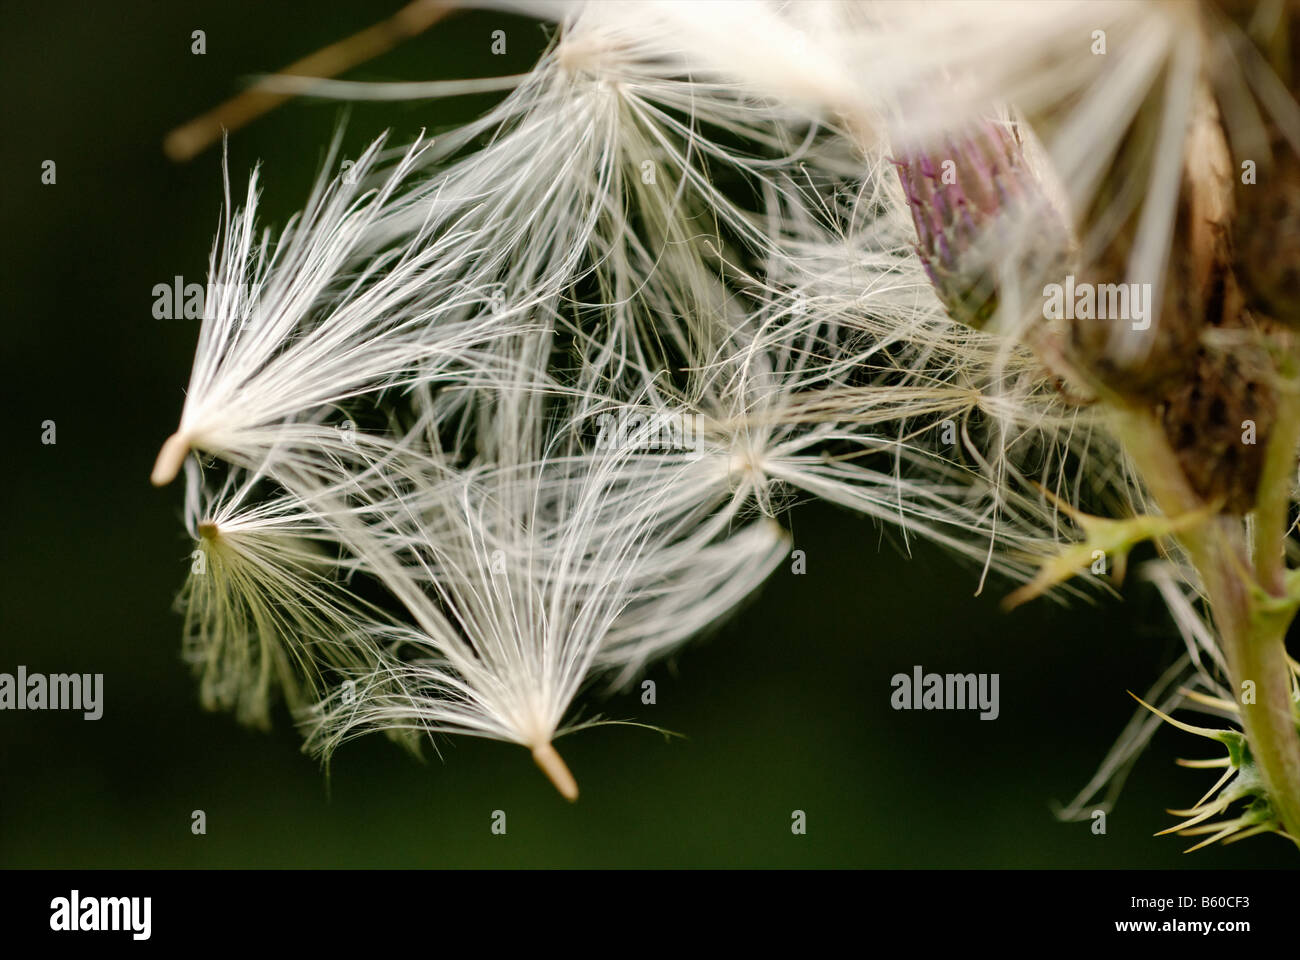 Creeping Thistle gone to seed - Stock Image